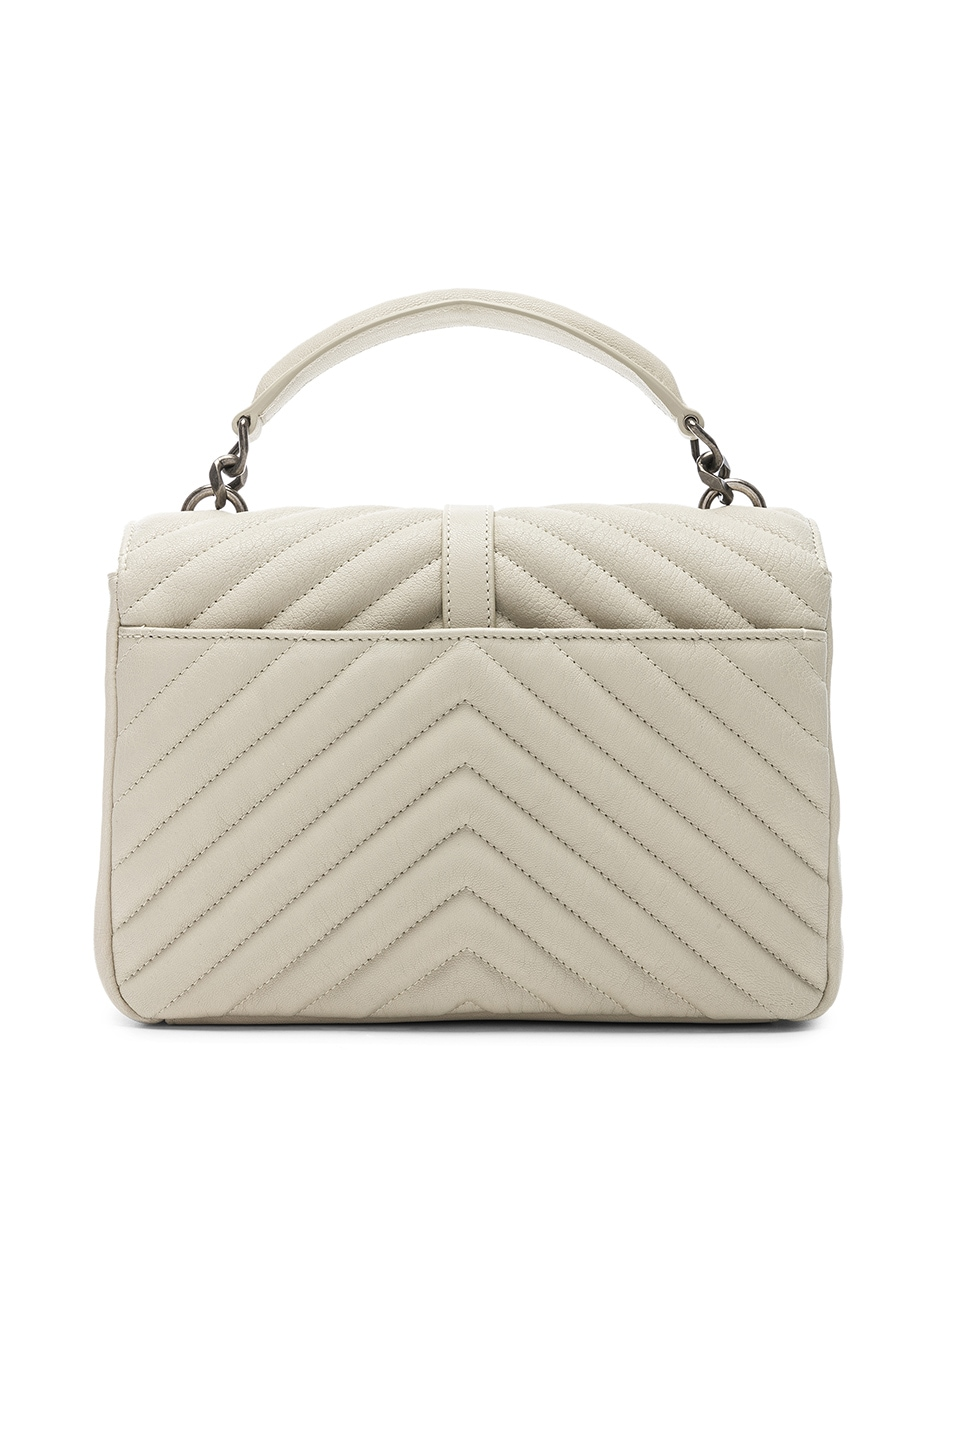 Image 3 of Saint Laurent Medium Monogramme College Bag in Crema Soft